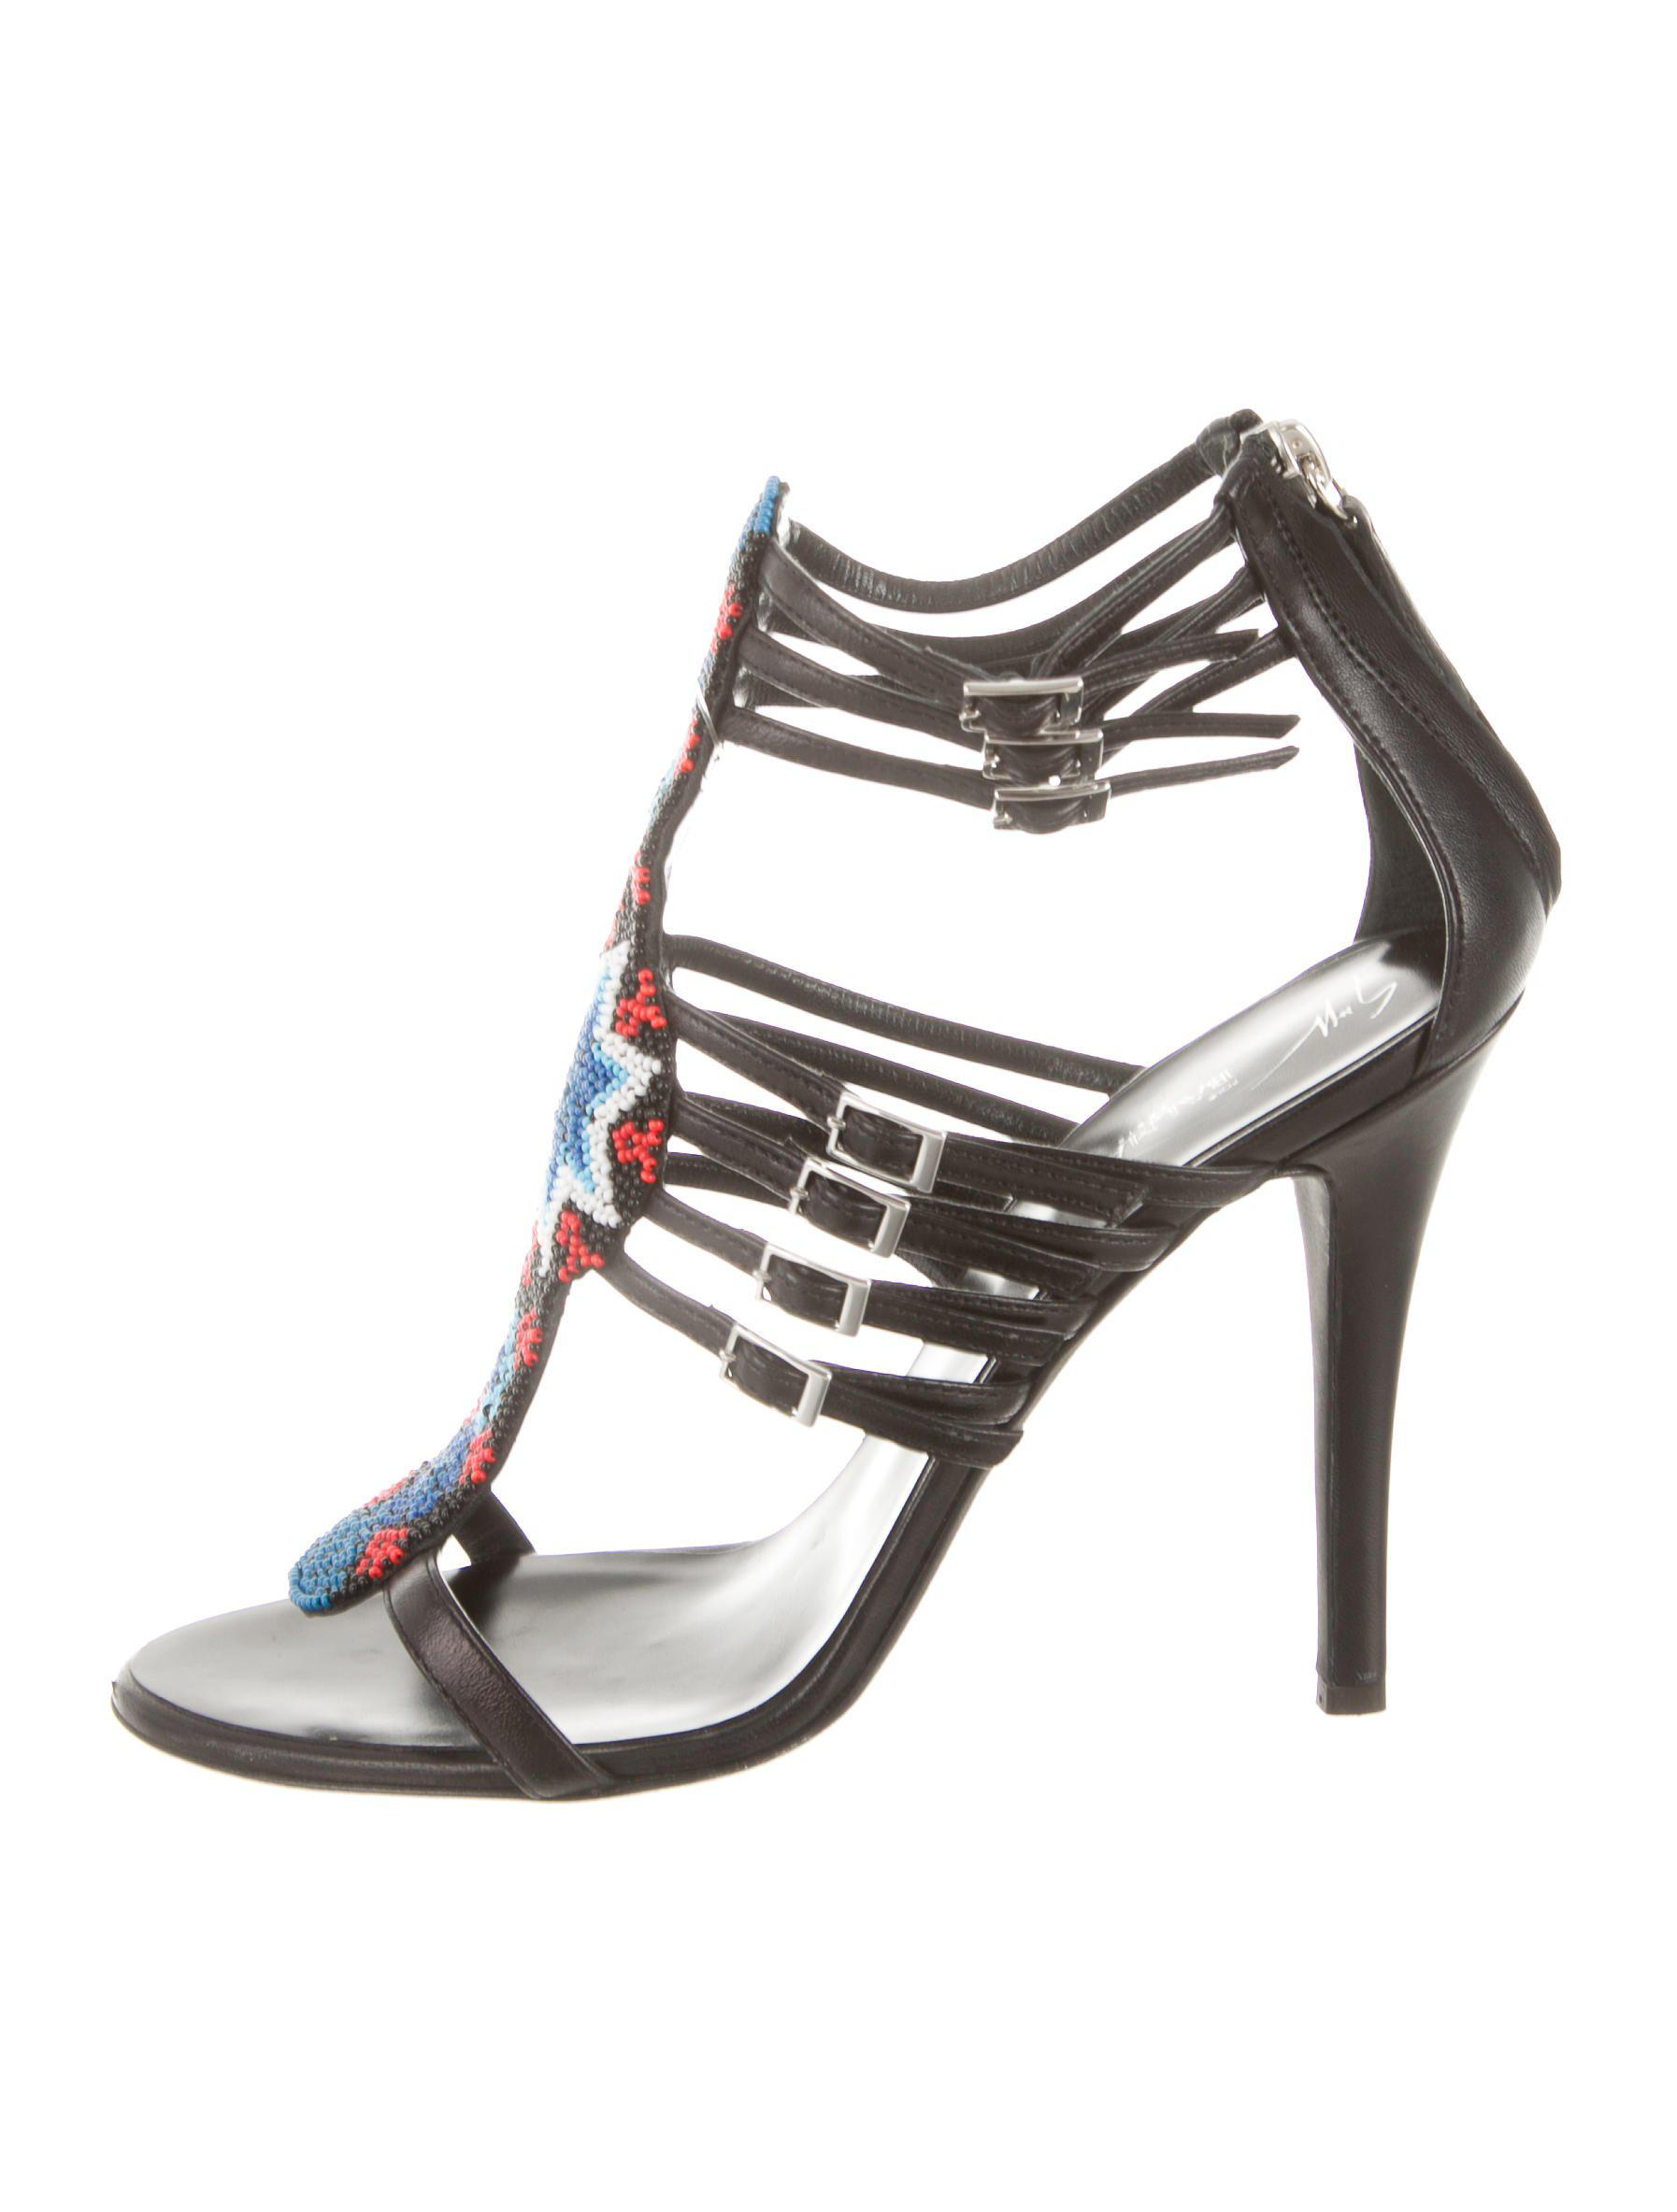 Giuseppe Zanotti Bead-Embellished Patent Leather Sandals 2014 newest online clearance cheap price free shipping fashionable lGlhh7WT